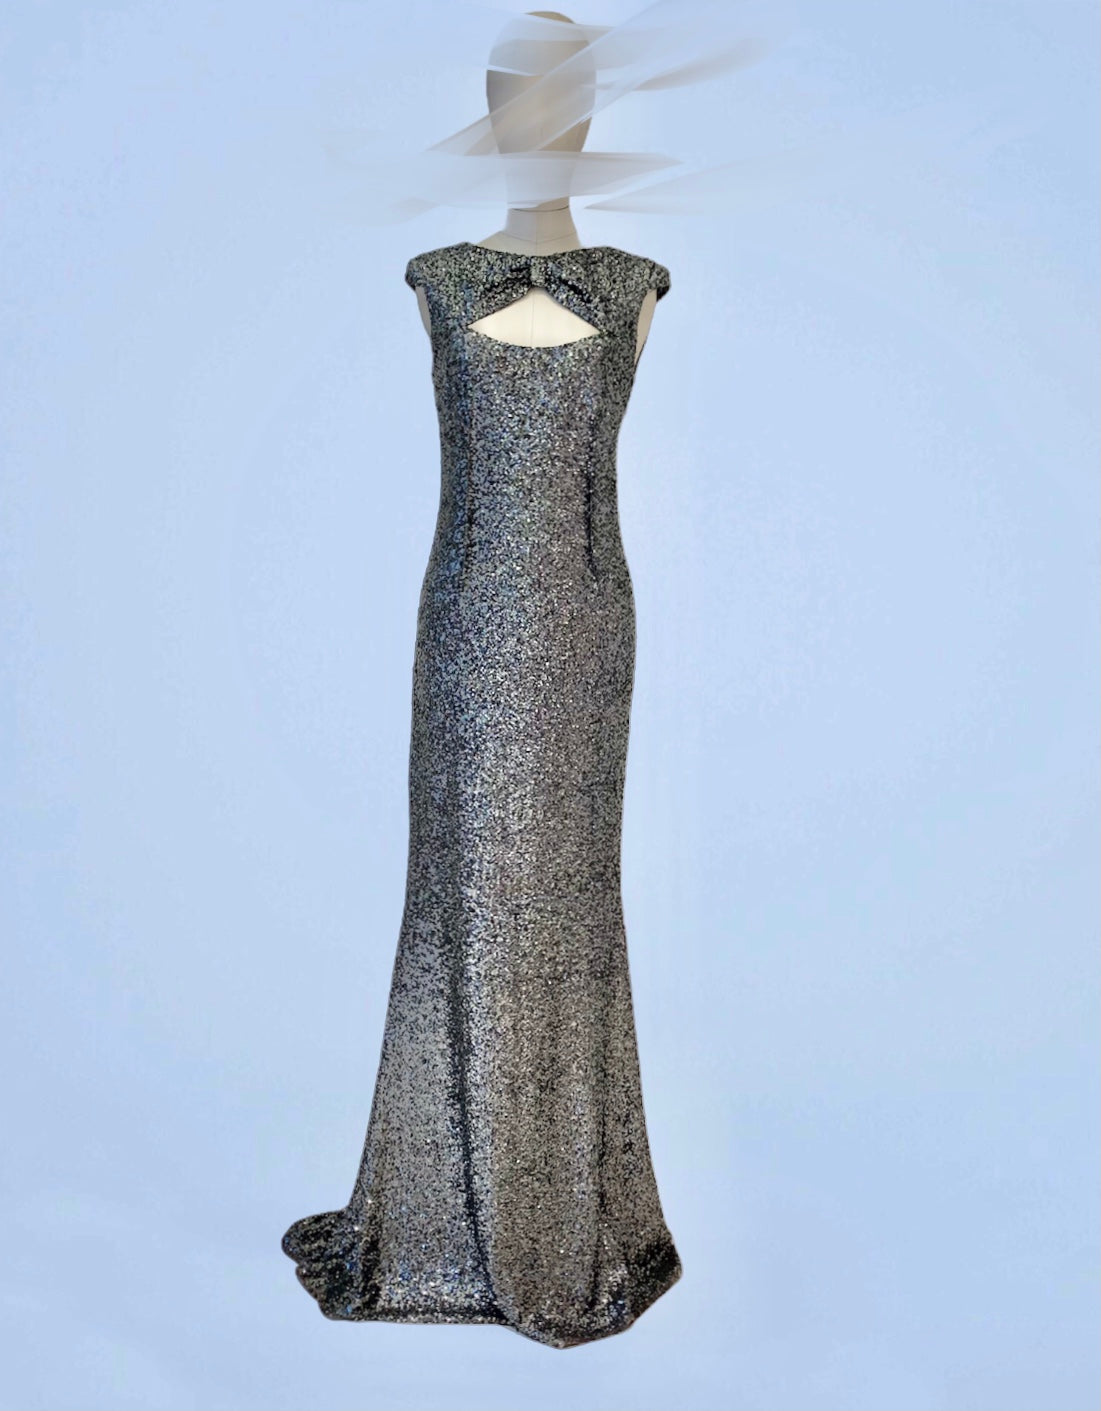 Tarnished silver long dress